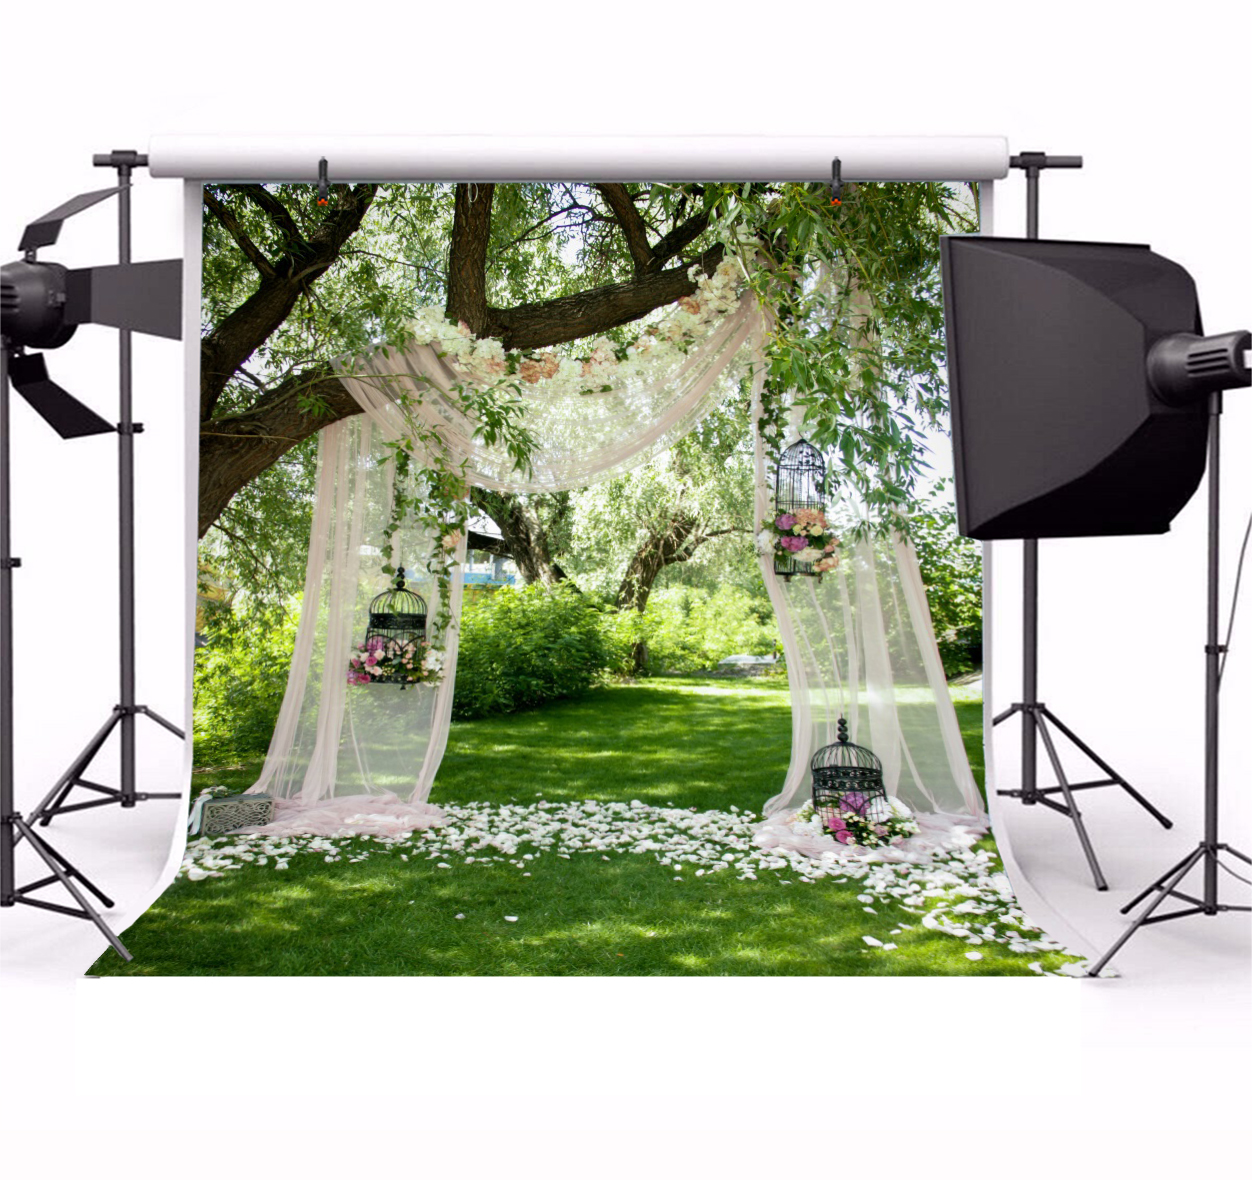 8x8FT Vinyl Photography Backdrop,Kiss,Lovers Near Abstract Tree Photo Background for Photo Booth Studio Props